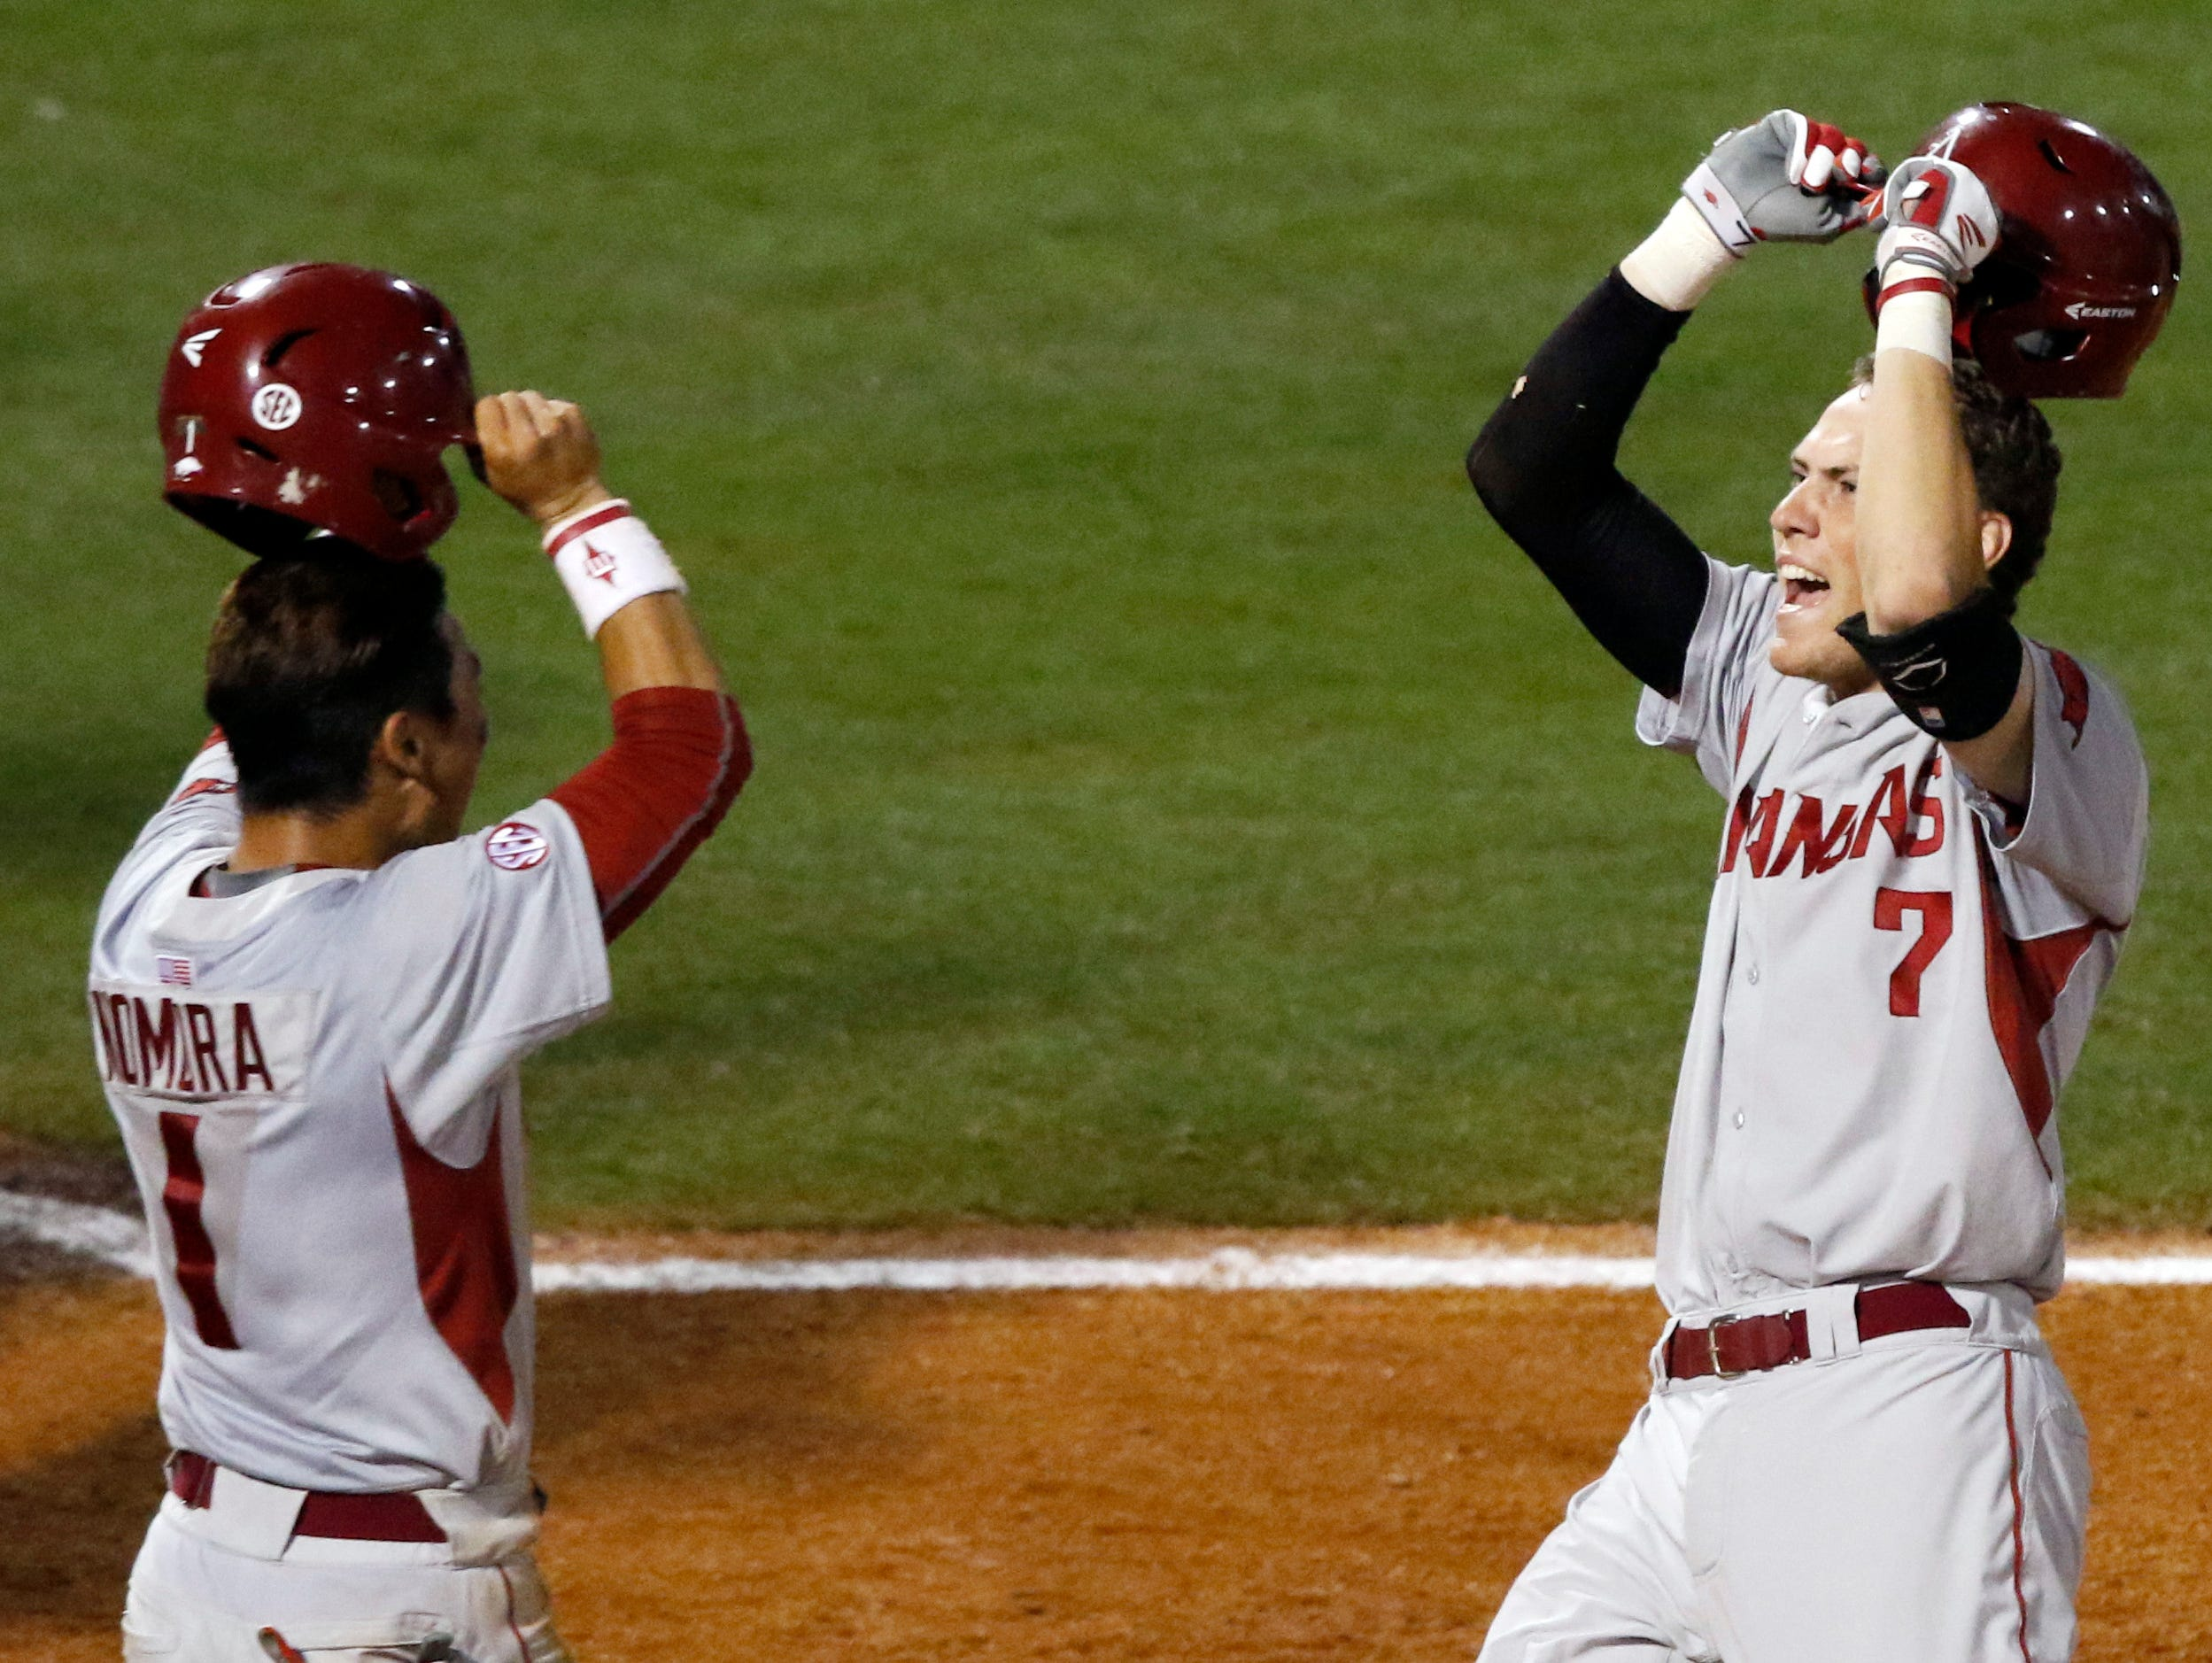 Arkansas's Bobby Wernes (7) celebrates with Rick Nomura (1) after hitting a two-run homer to go ahead of Florida and hold on to win 7-6 during the ninth inning at the Southeastern Conference tournament Thursday at the Hoover Met in Hoover, Ala.